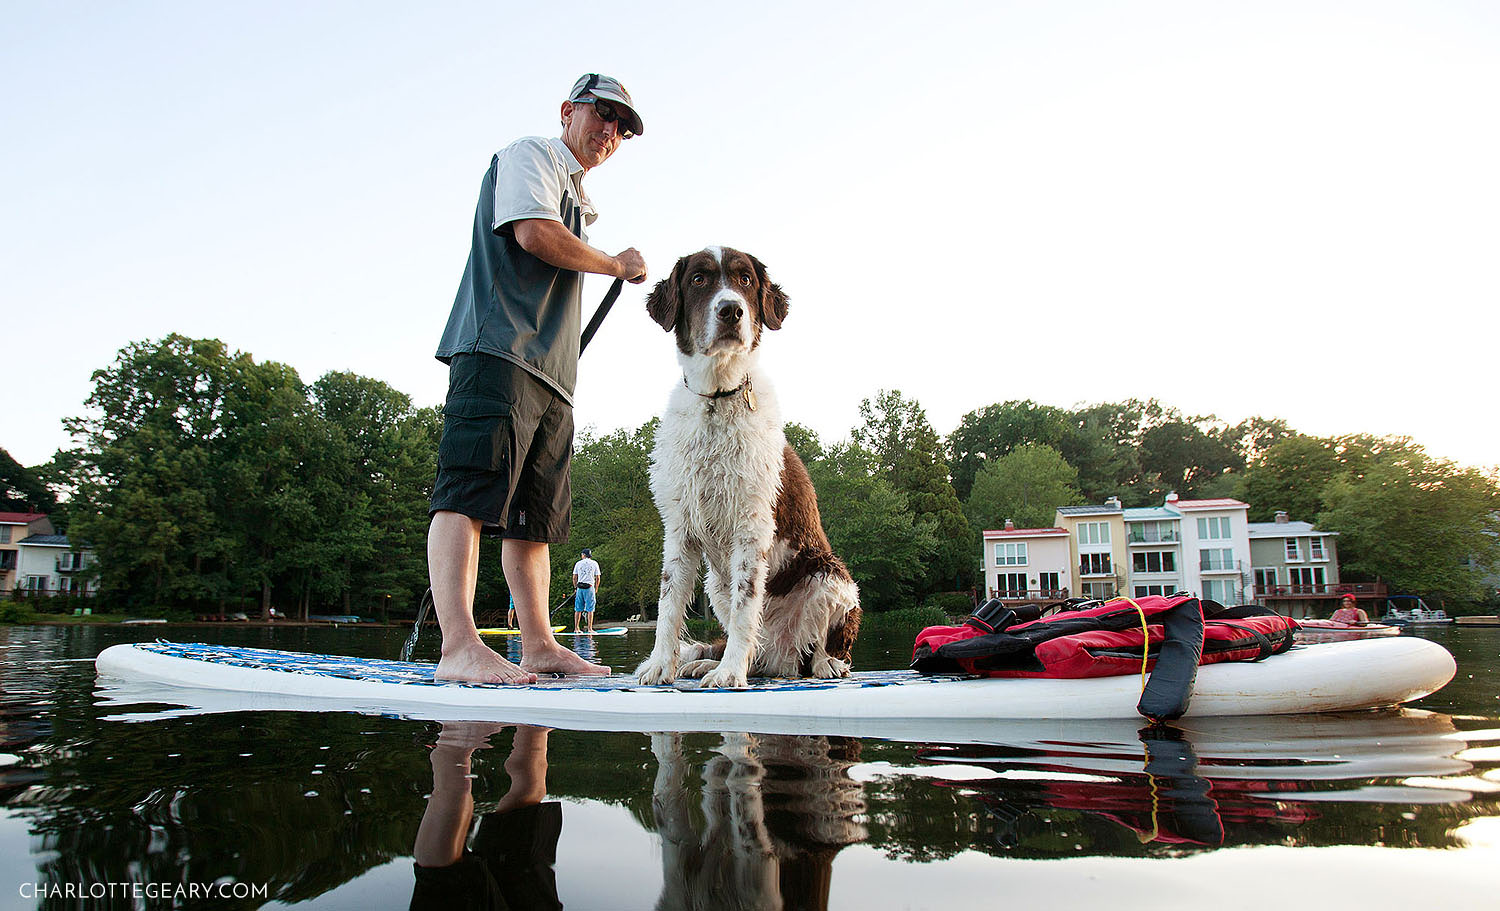 Dog paddleboarding at Lake Anne in Reston, Virginia